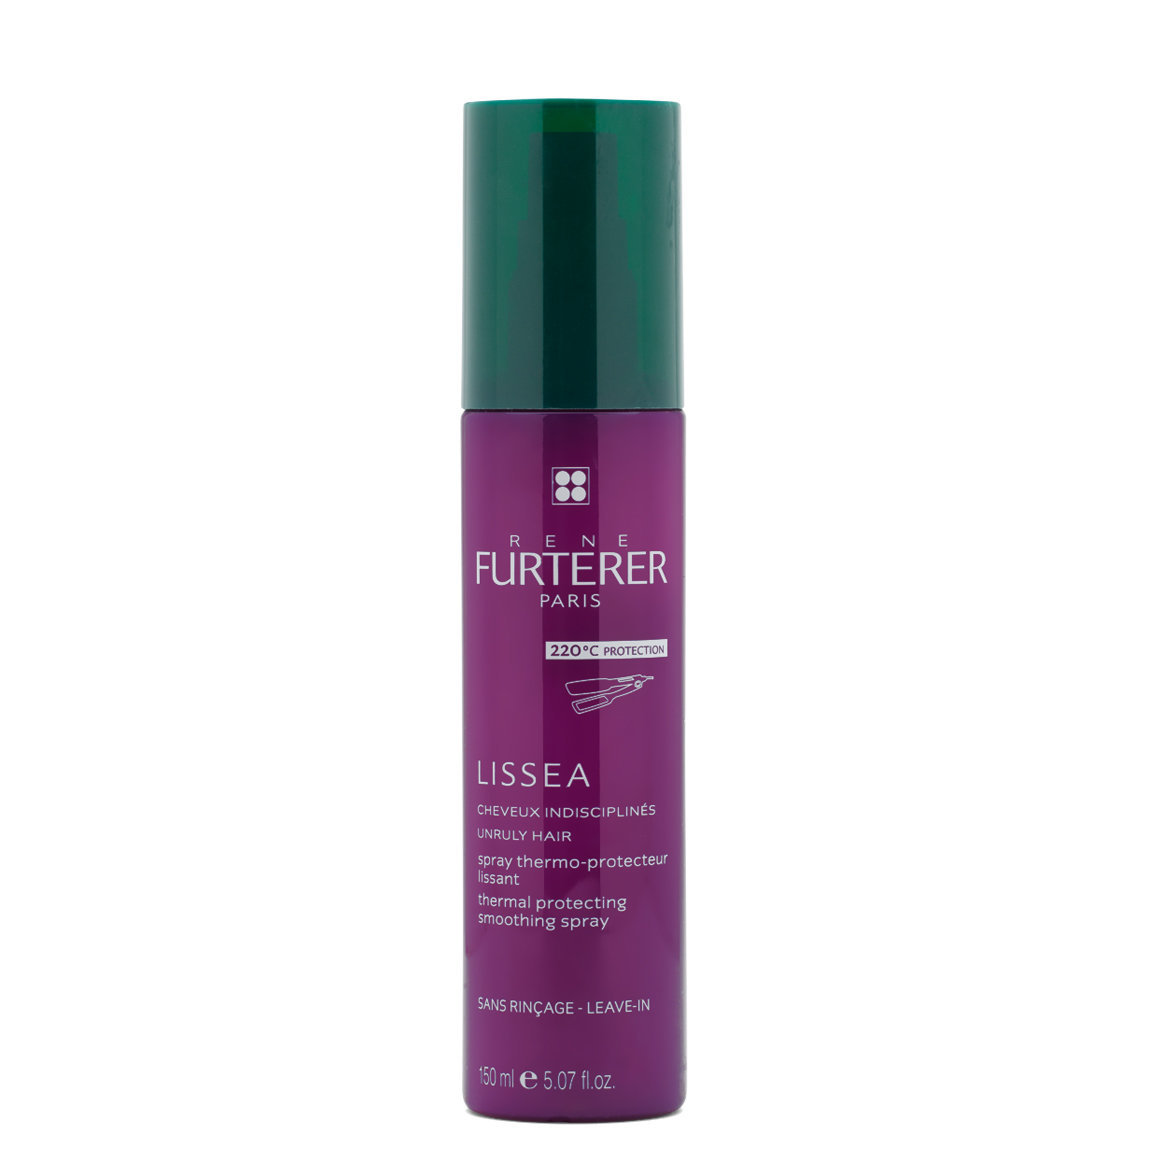 Rene Furterer Lissea Thermal Protecting Smoothing Spray product swatch.